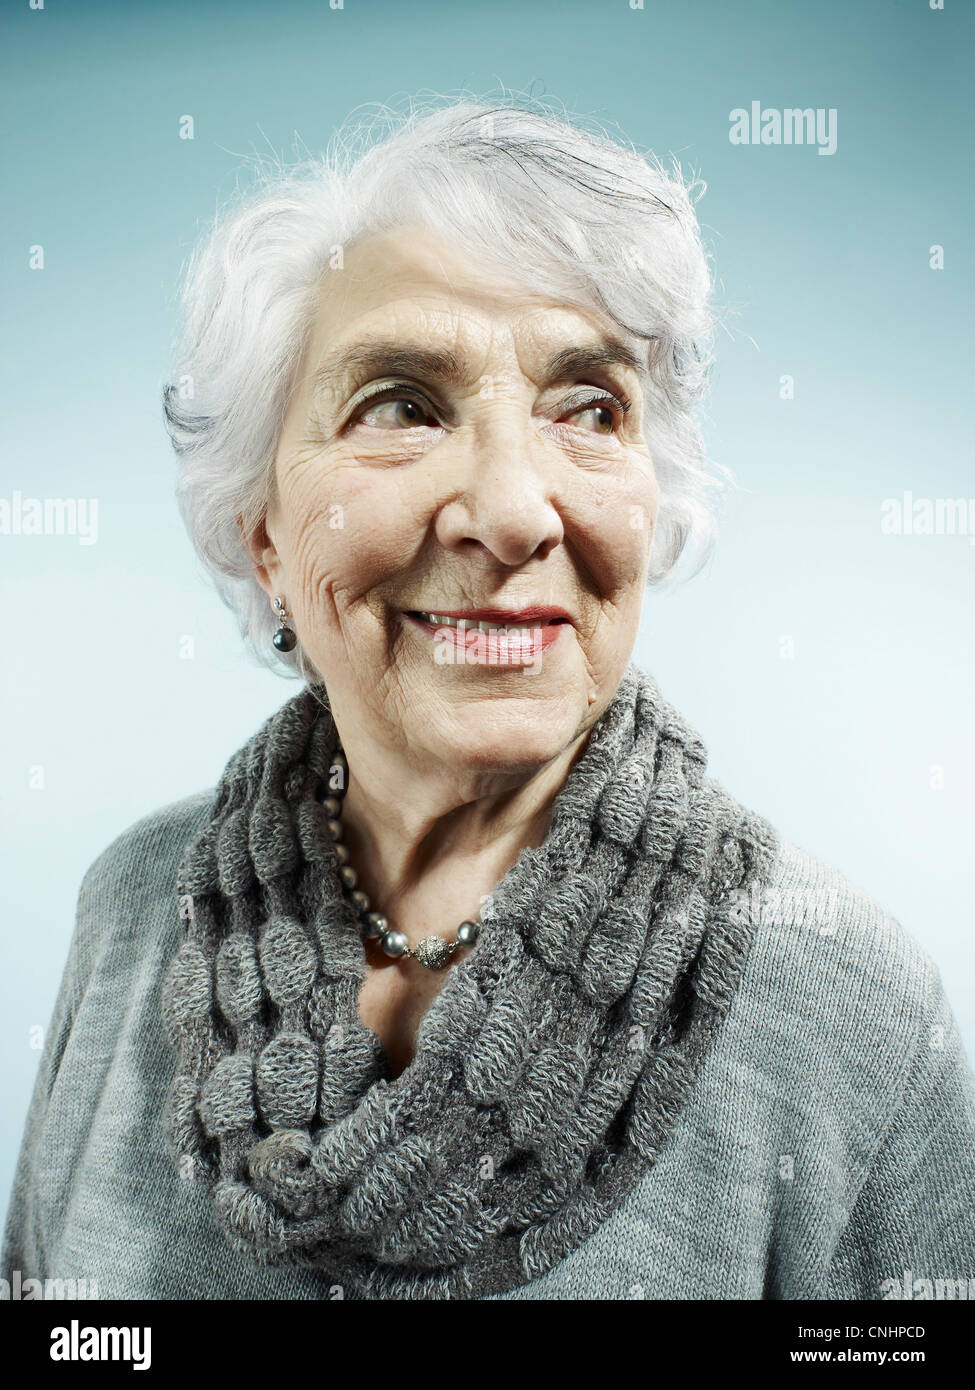 An elegant senior woman smiling and looking away - Stock Image